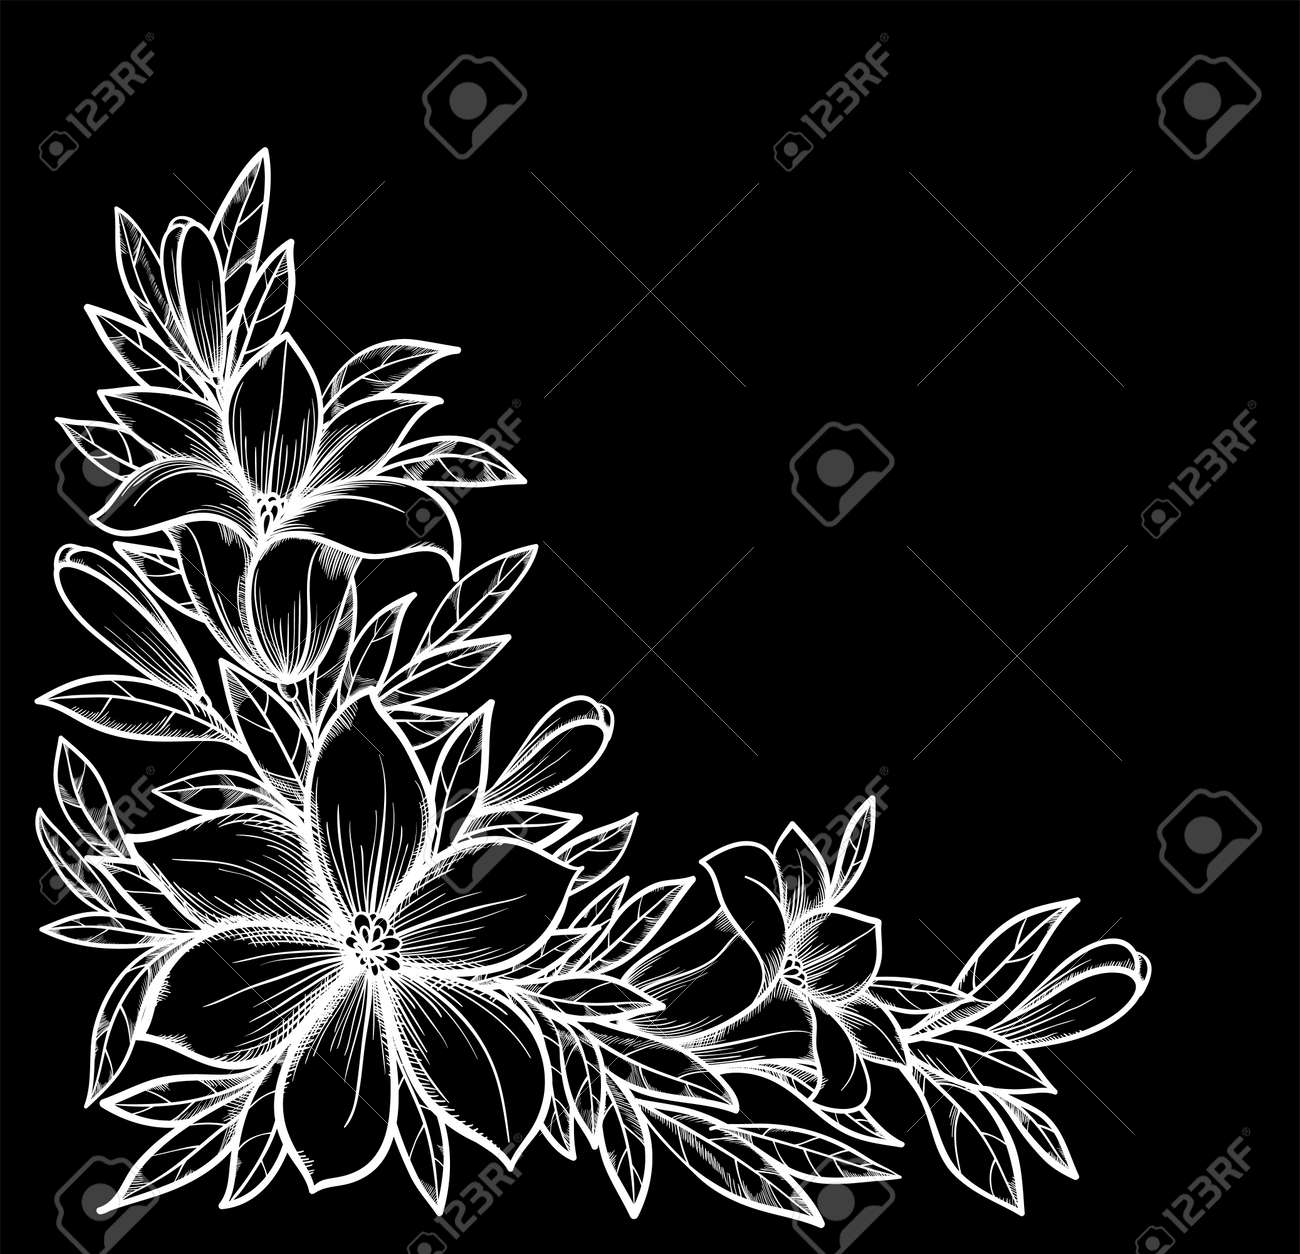 Beautiful black and white branch with flowers background for design for greeting card and invitation